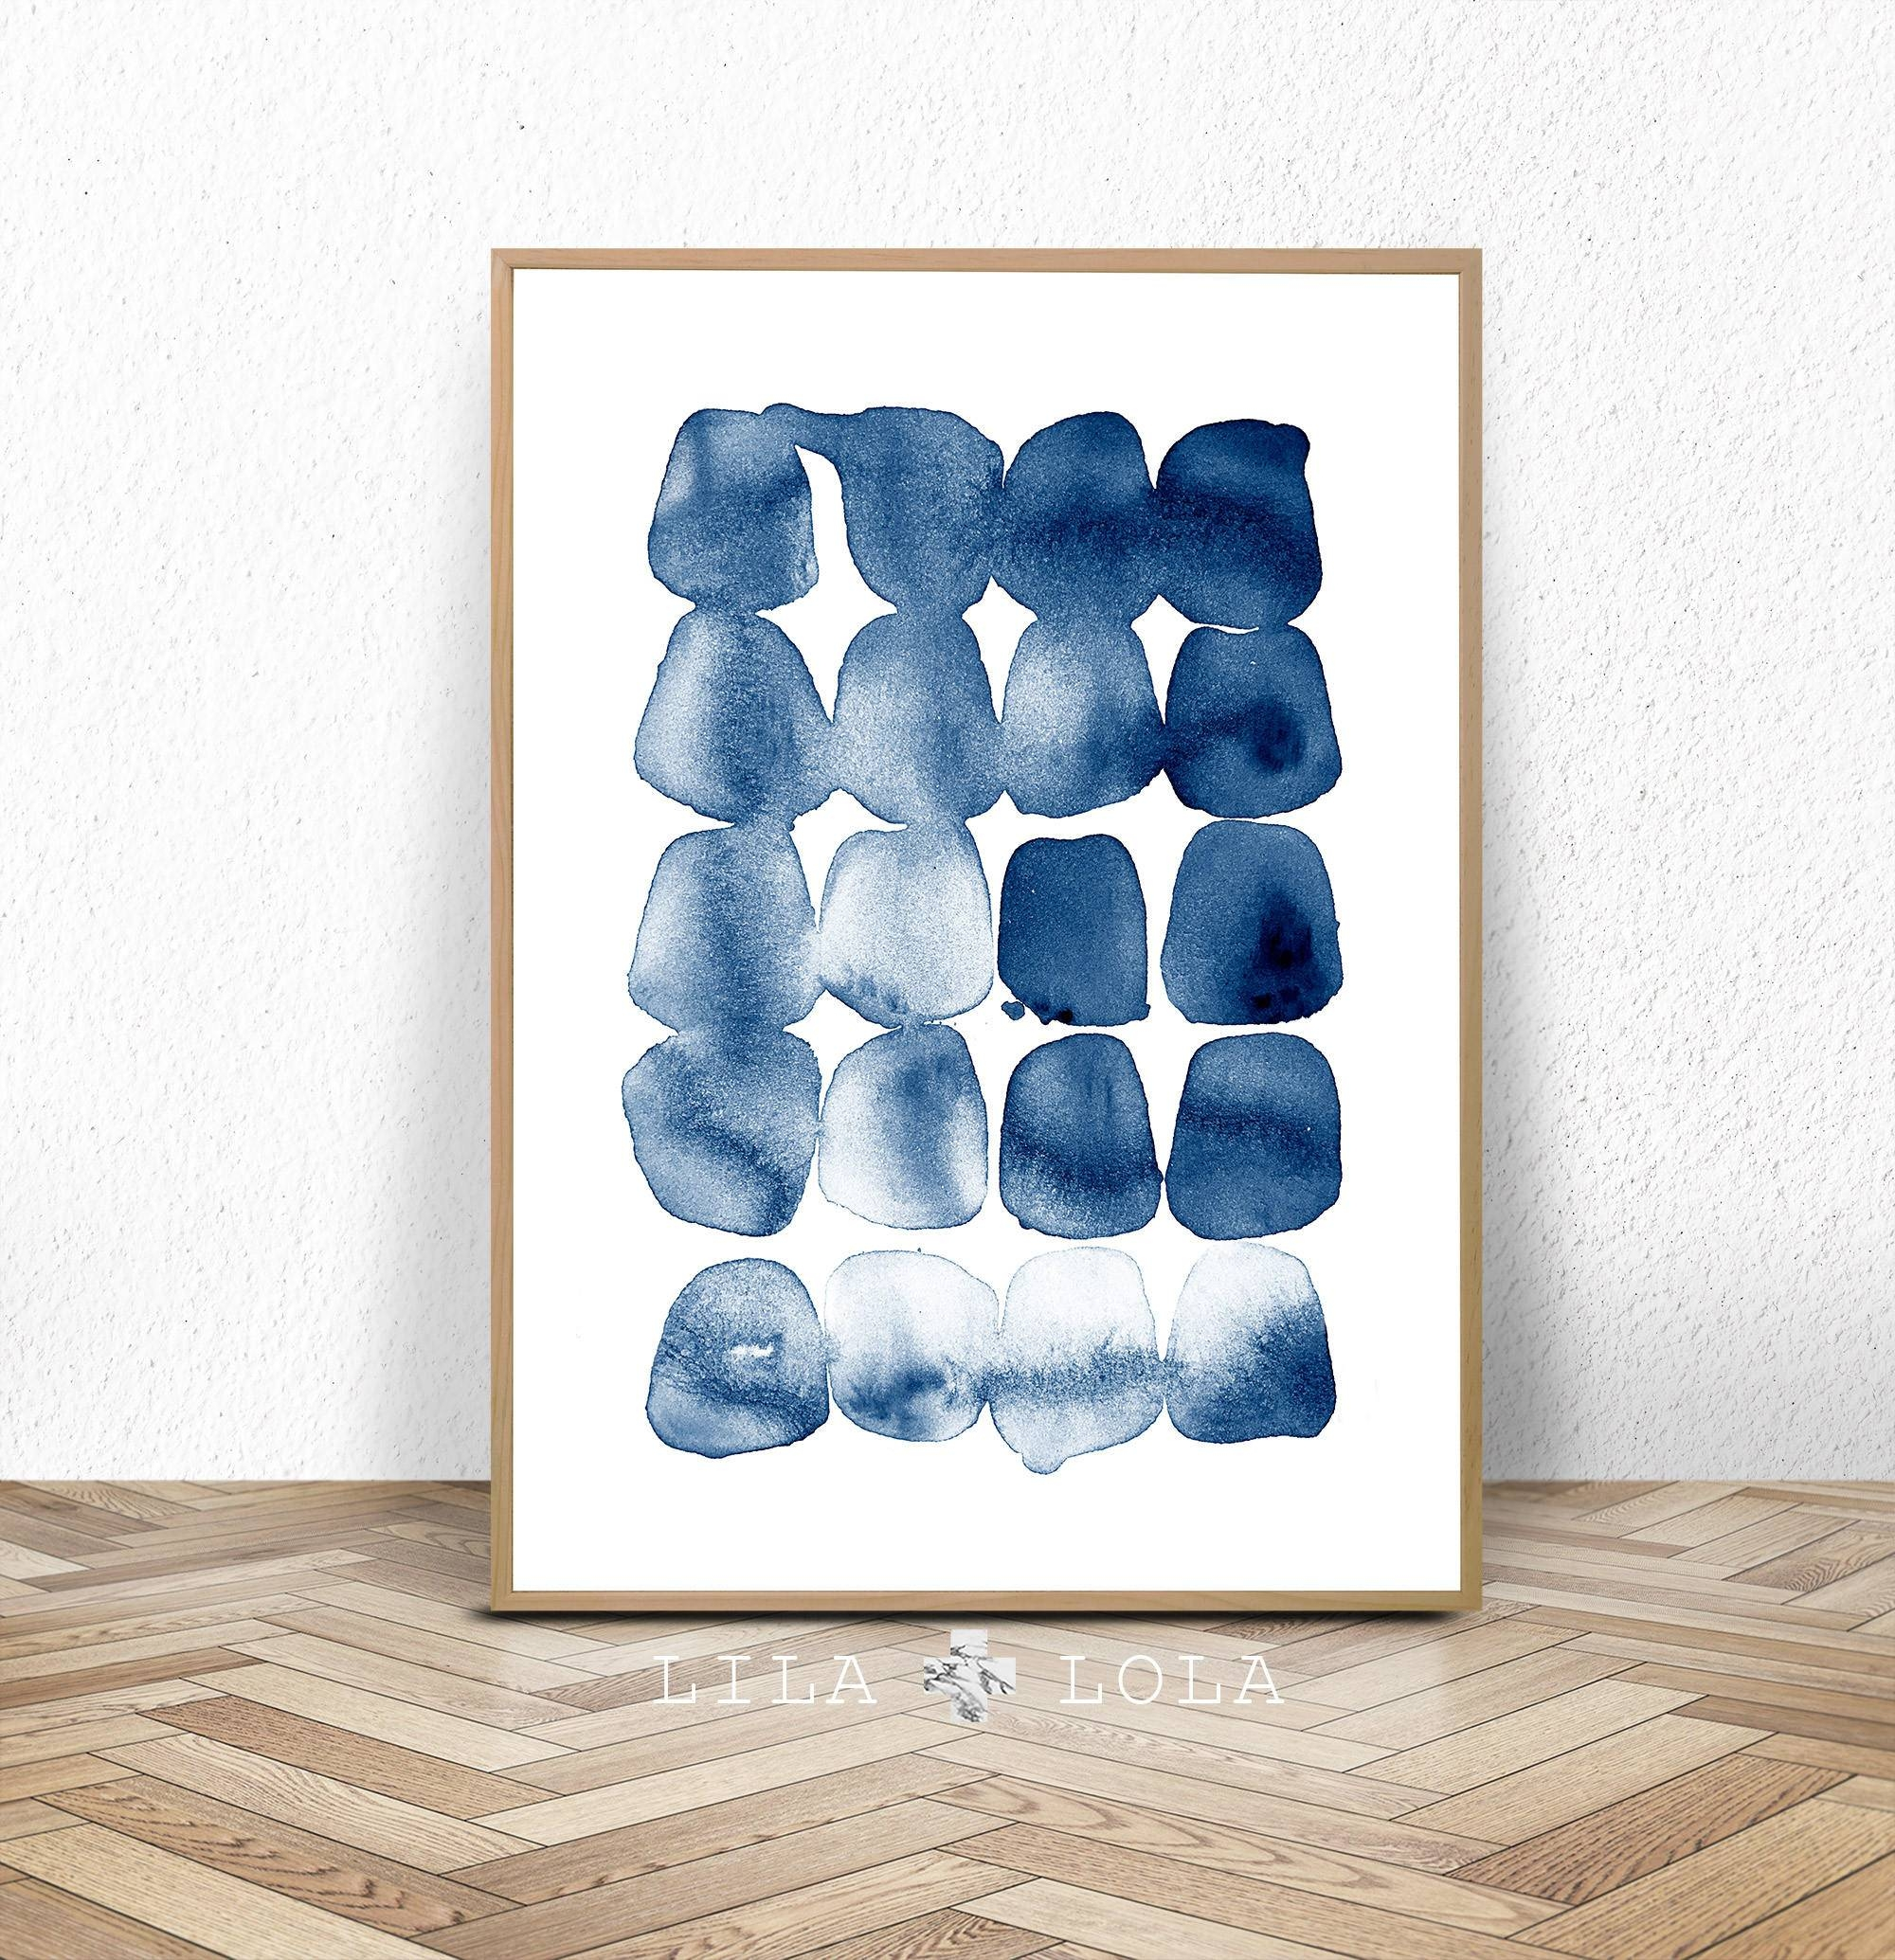 Home Gallery – Etsy Within Newest Navy Blue Wall Art (View 17 of 20)